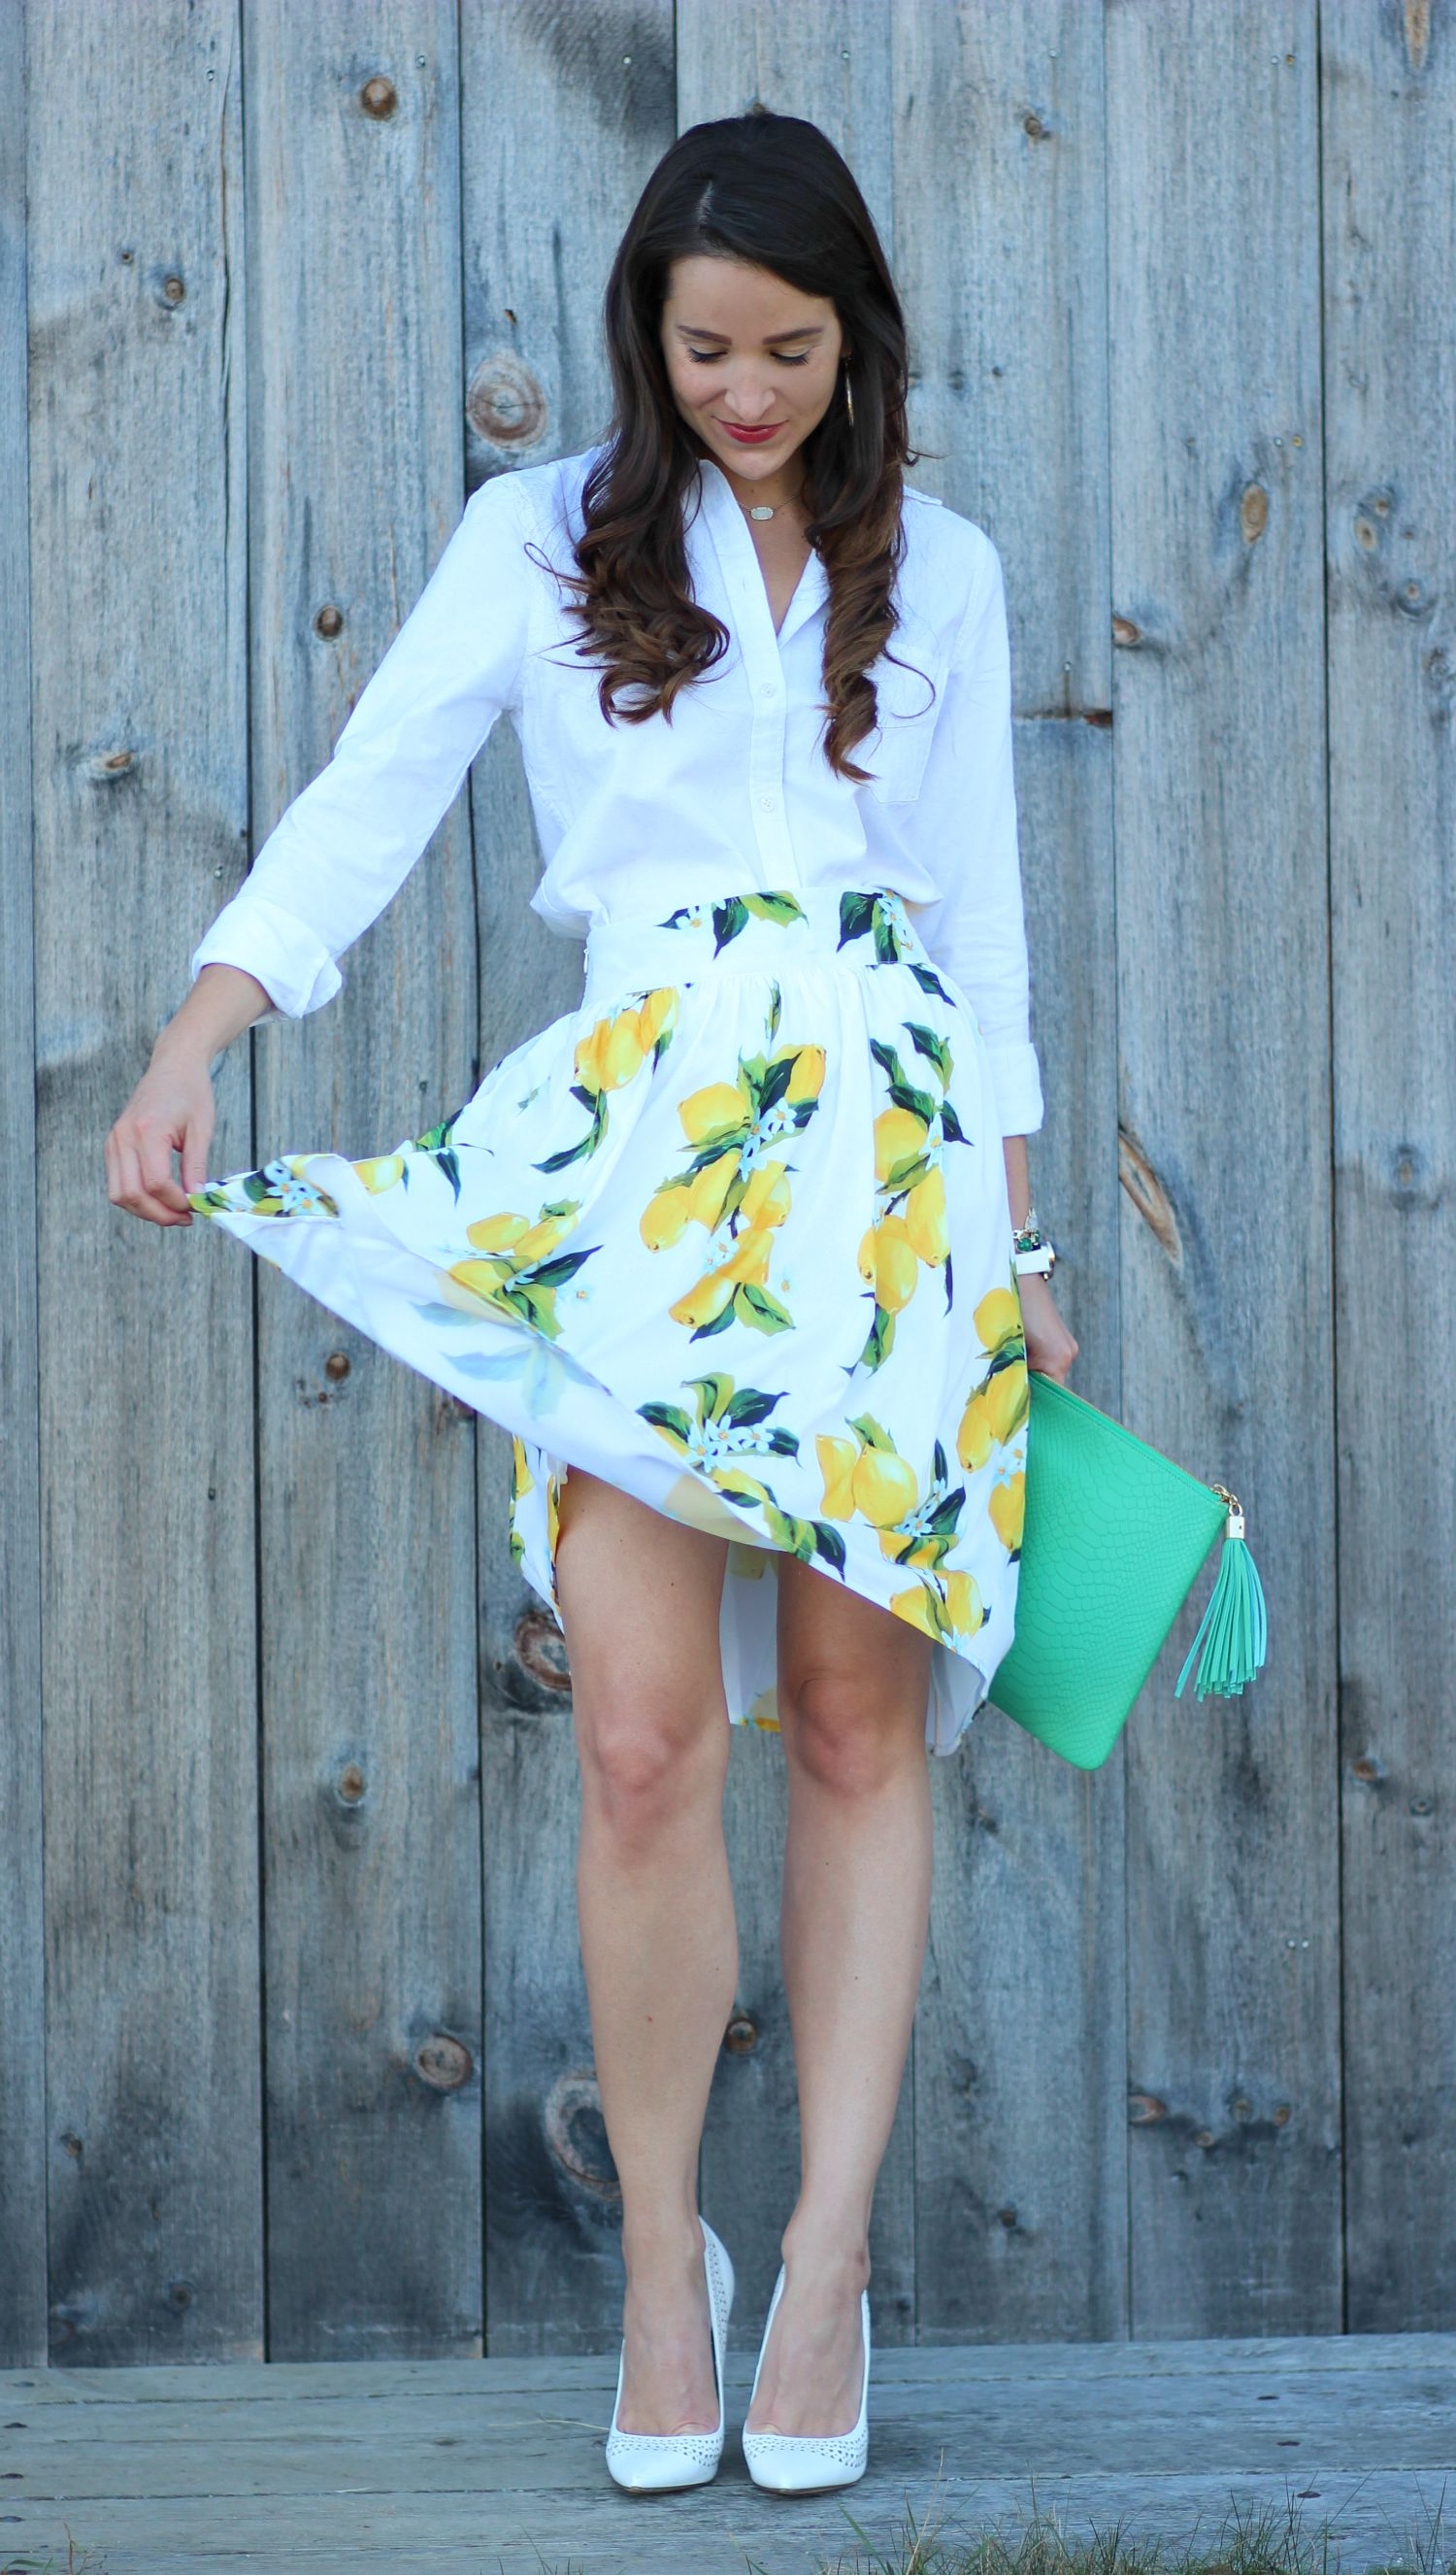 High Waisted Lemon Print Skirt With White Oxford And Green Clutch Such A Cute Church Or Work Outfit Idea Printed Skirts Fashion Lemon Print [ 2652 x 1500 Pixel ]